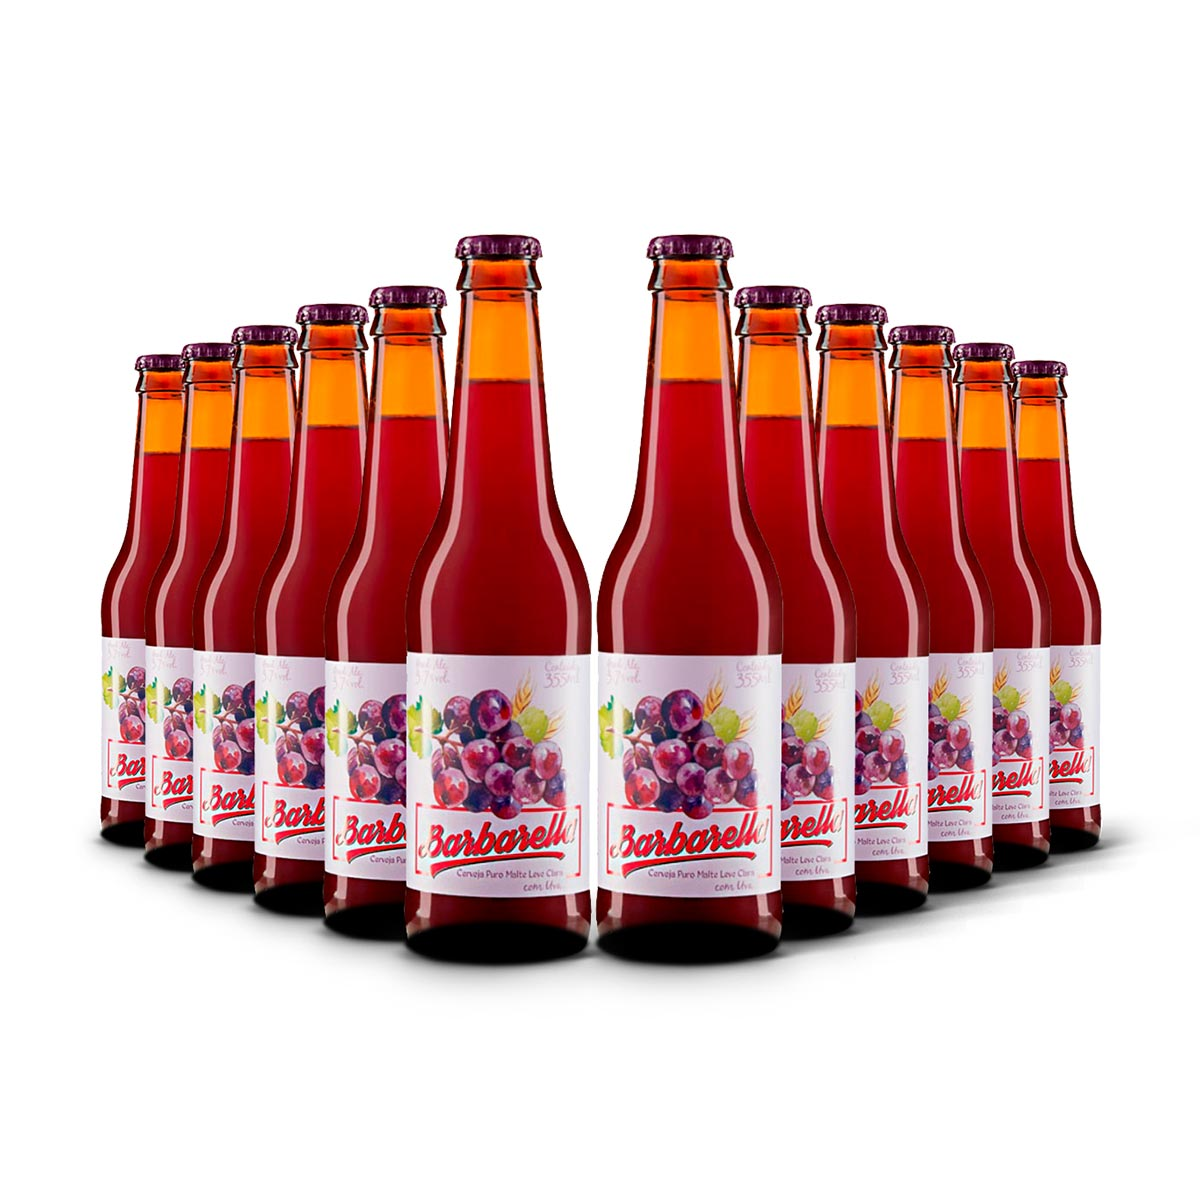 Pack Barbarella Fruitbier Uva 12 cervejas 355ml